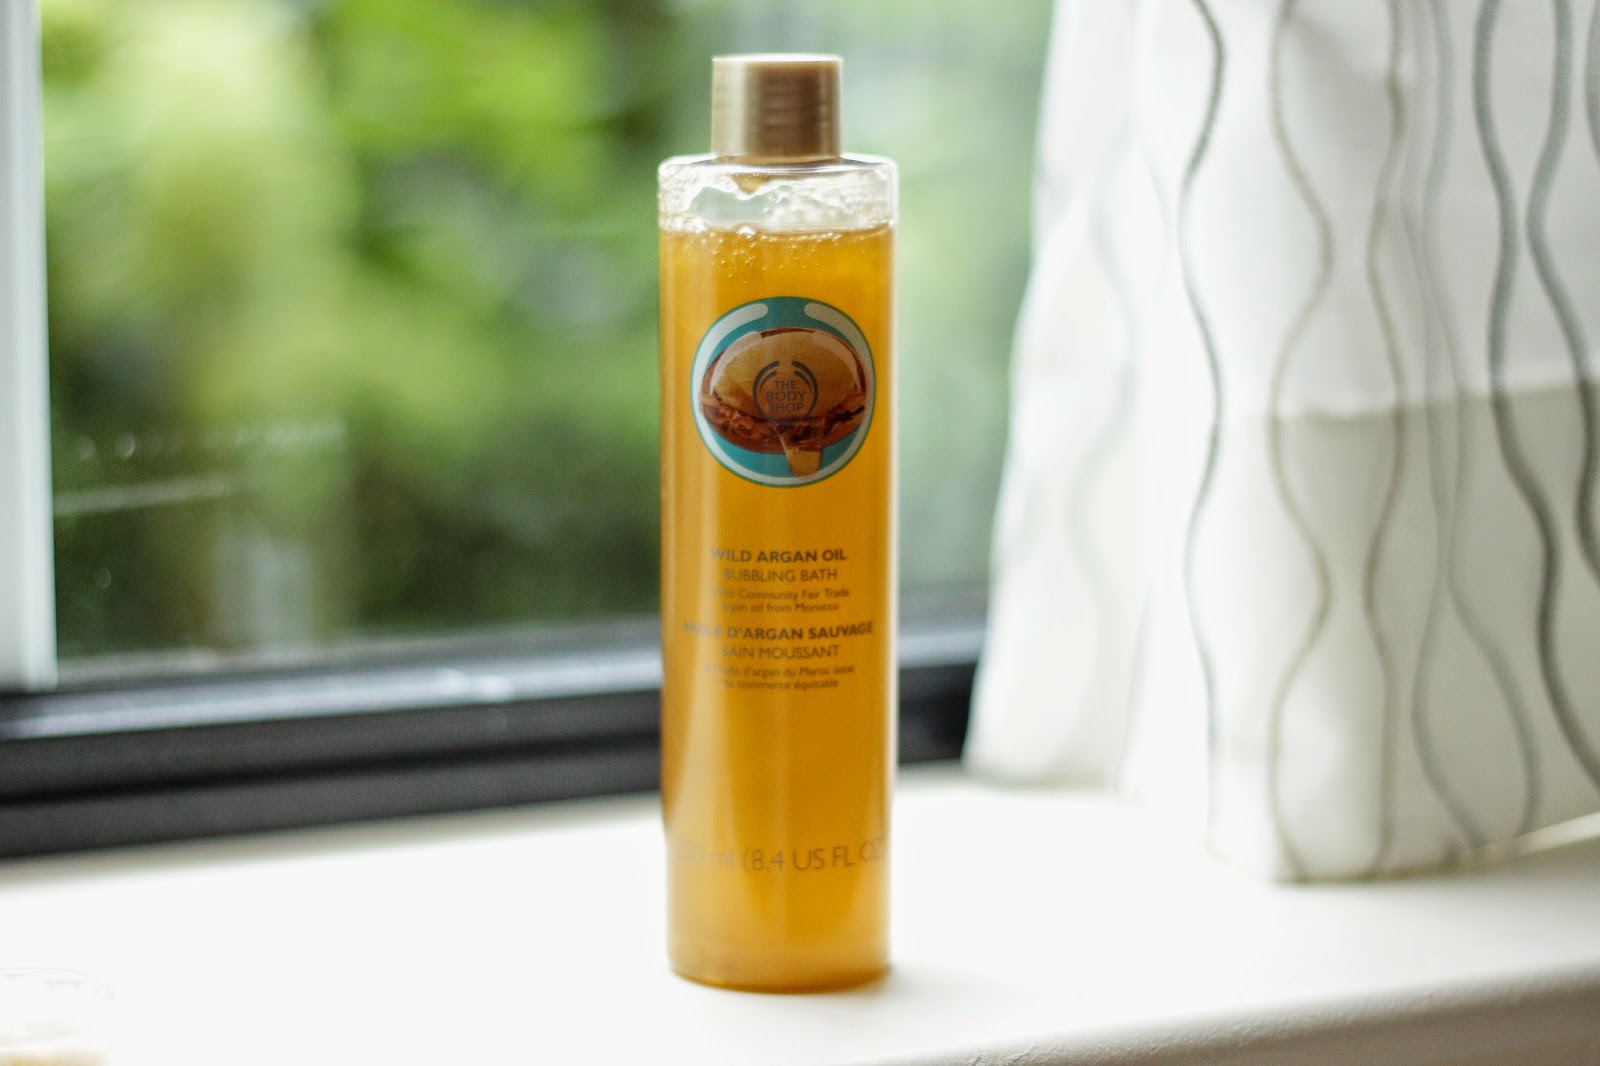 review ervaring the body shop wild argan oil lijn, review ervaring the body shop wild argan oil bubbling bath